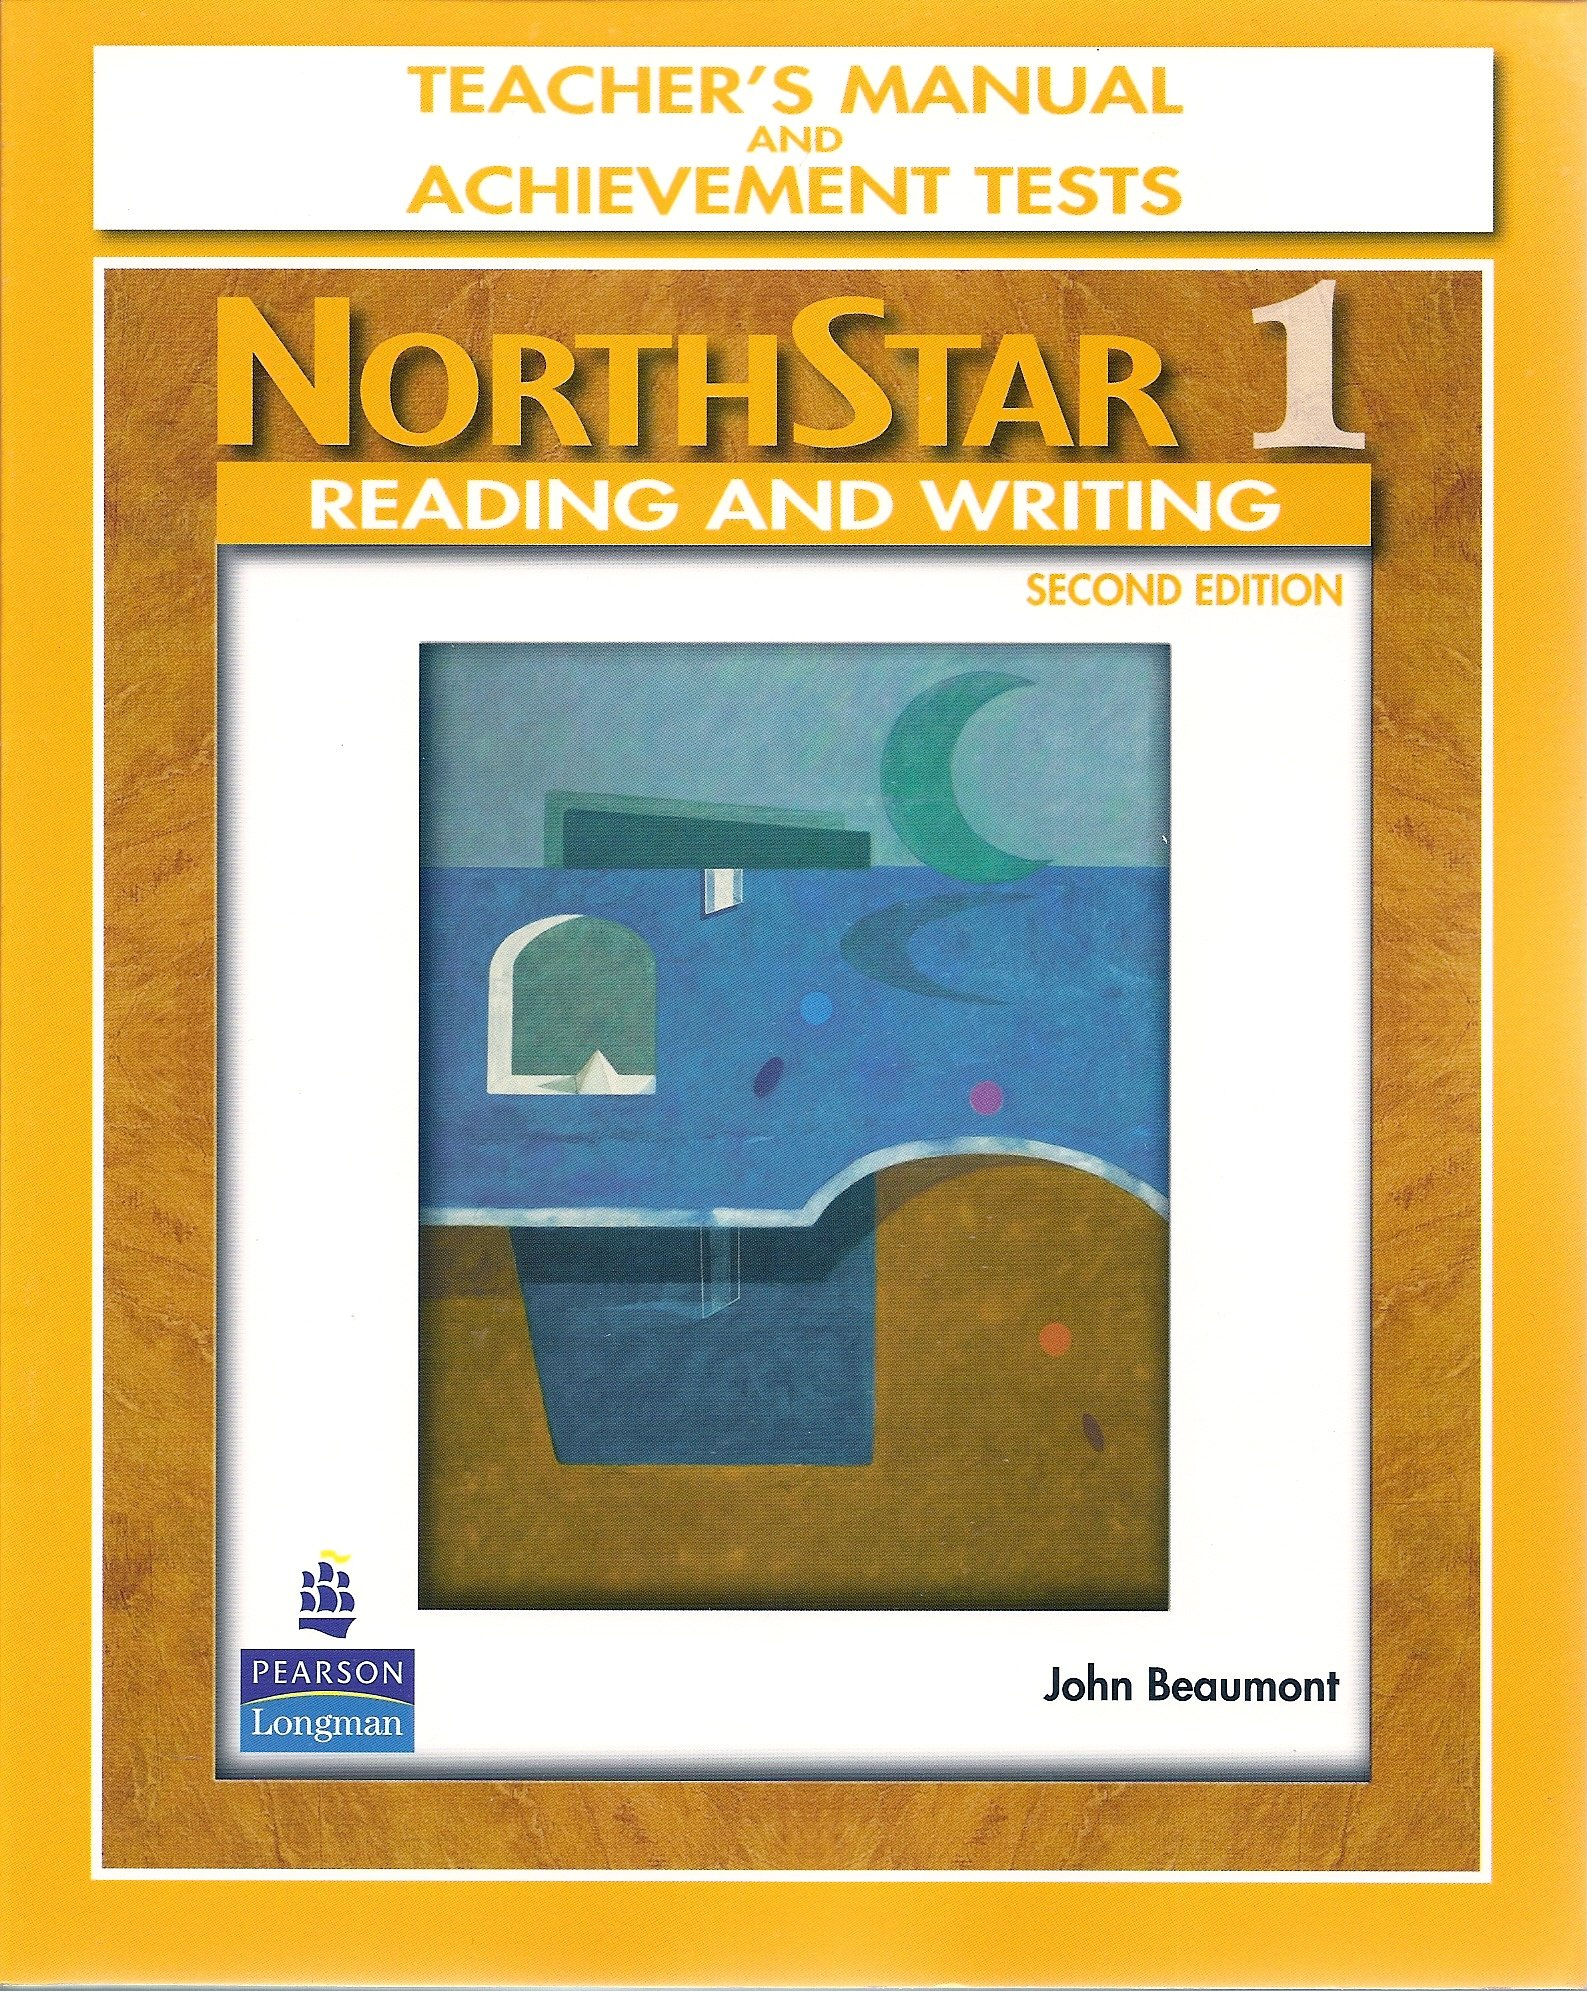 NorthStar Reading and Writing 1, Second Edition (Teacher's Manual and  Achievement Tests): Amazon.com: Books